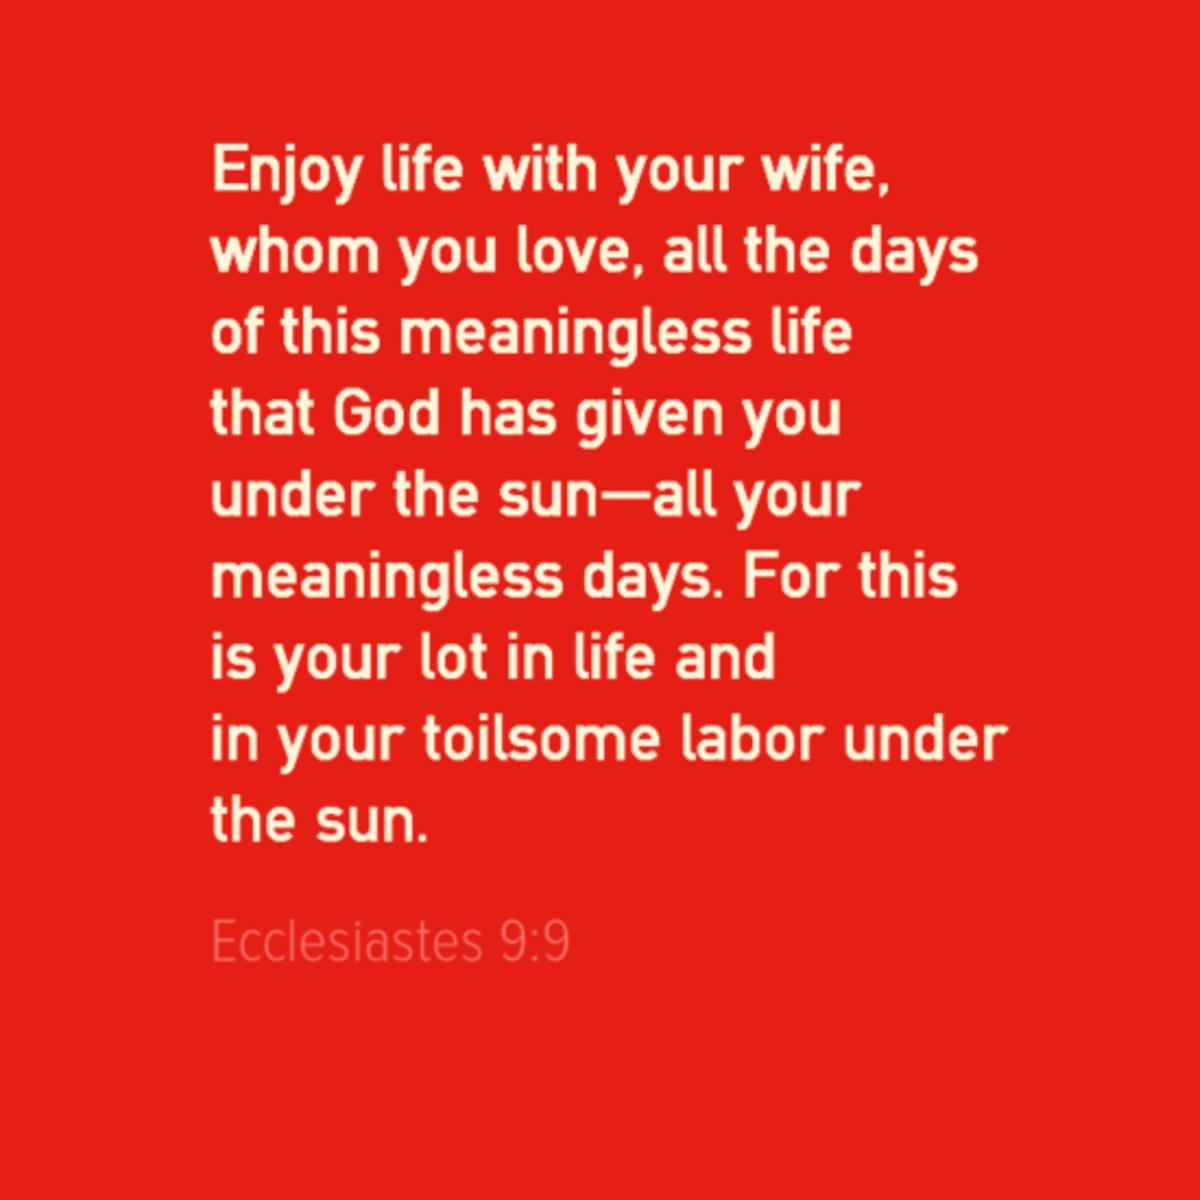 Bible Quotes On Love And Marriage Bible Verses On Friendship In Marriage Quotes About Love Taglog